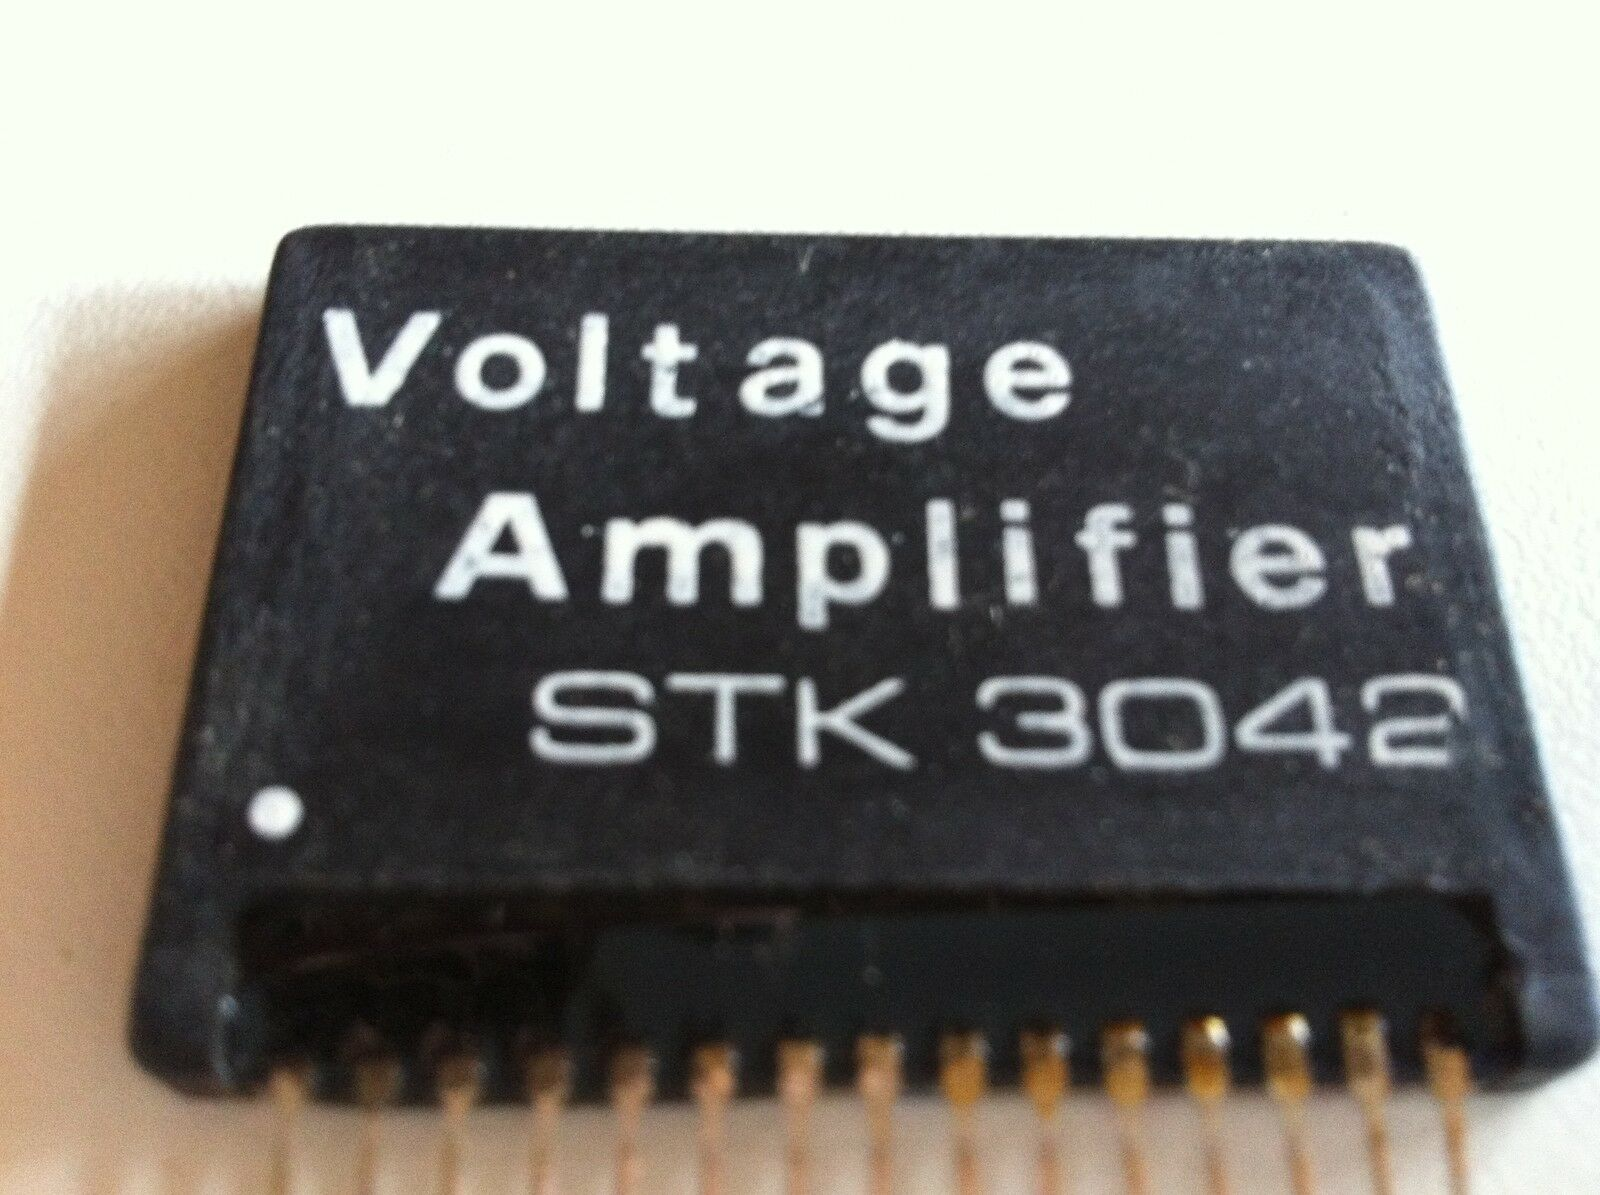 Stk3042 Voltage Amplifier Heat Sink Compound By Sanyo 1995 40w Audio Based On Tda1514 1 Of 1free Shipping